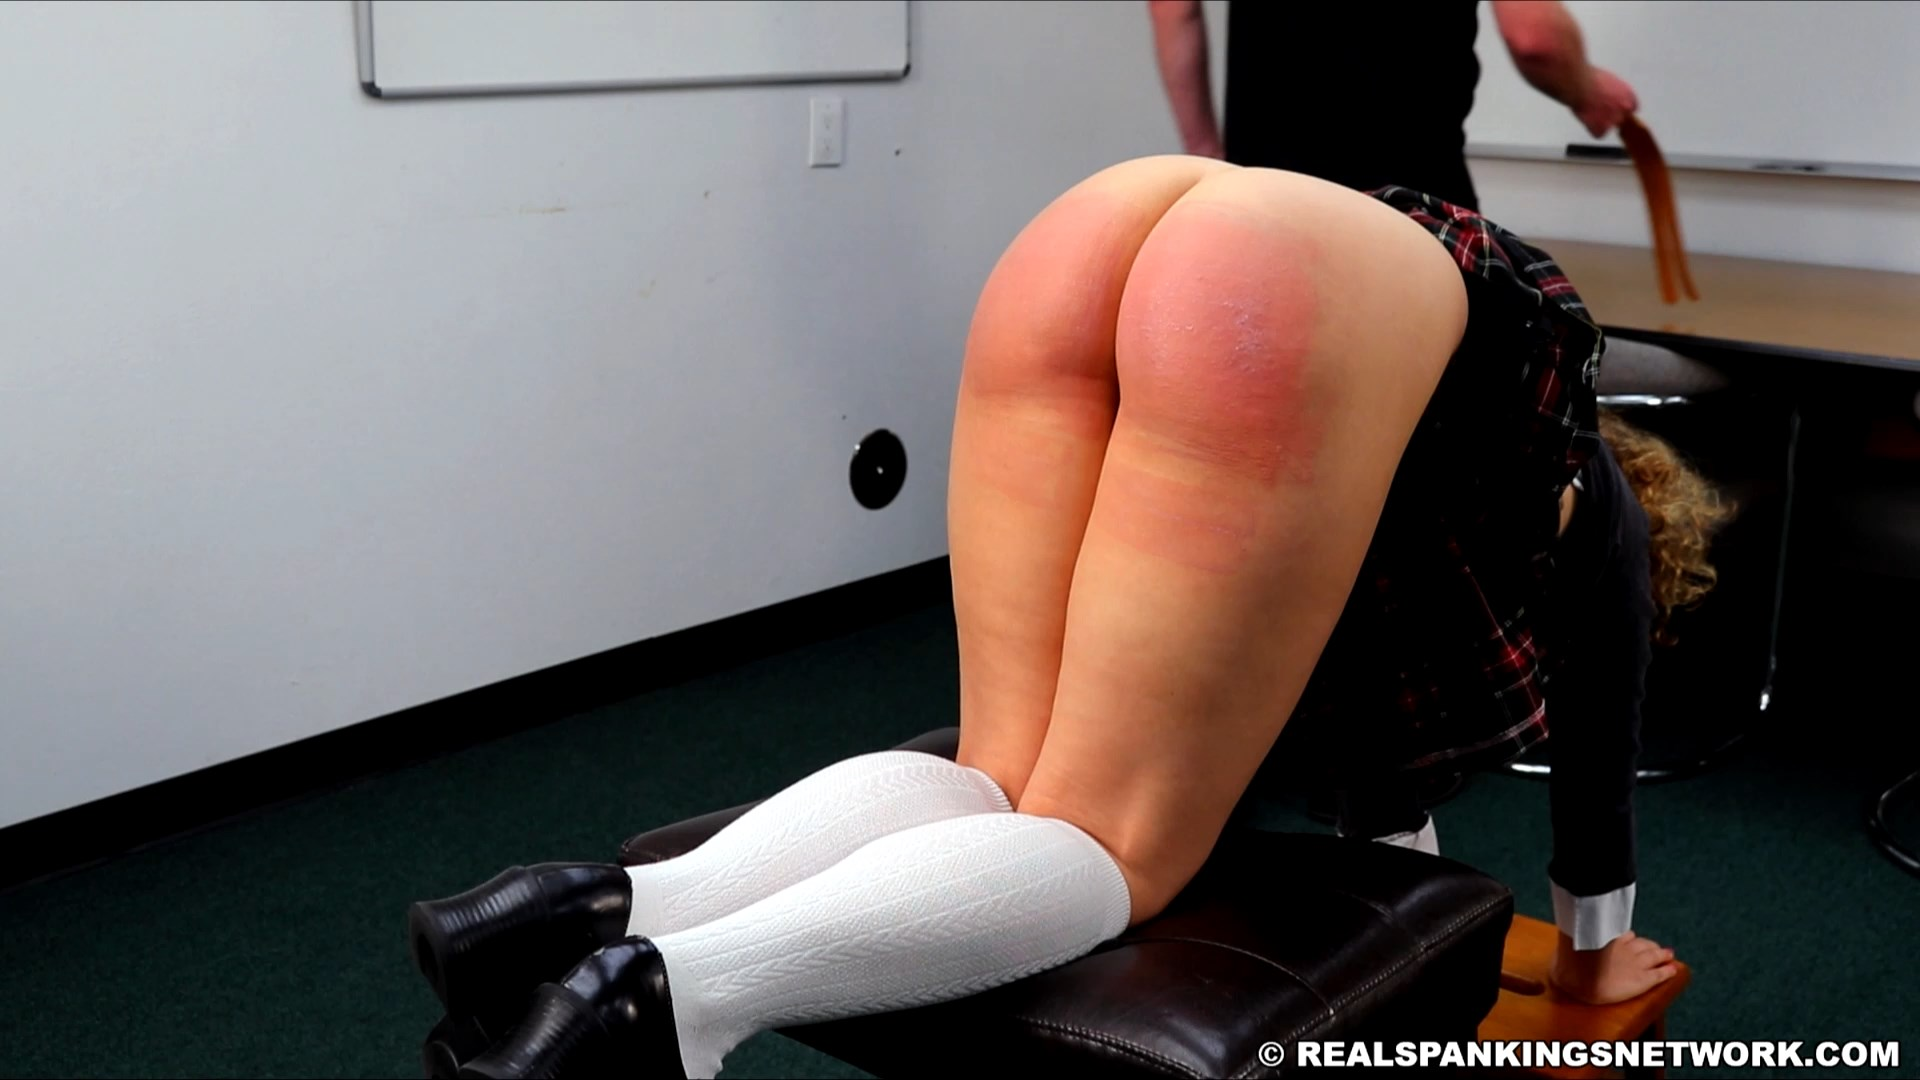 Real Spankings Institute  – RM/SD – Kiki Cali – Slacking on Her Chores and a Dress Code Violations (Part 1) (Nov 27, 2020)